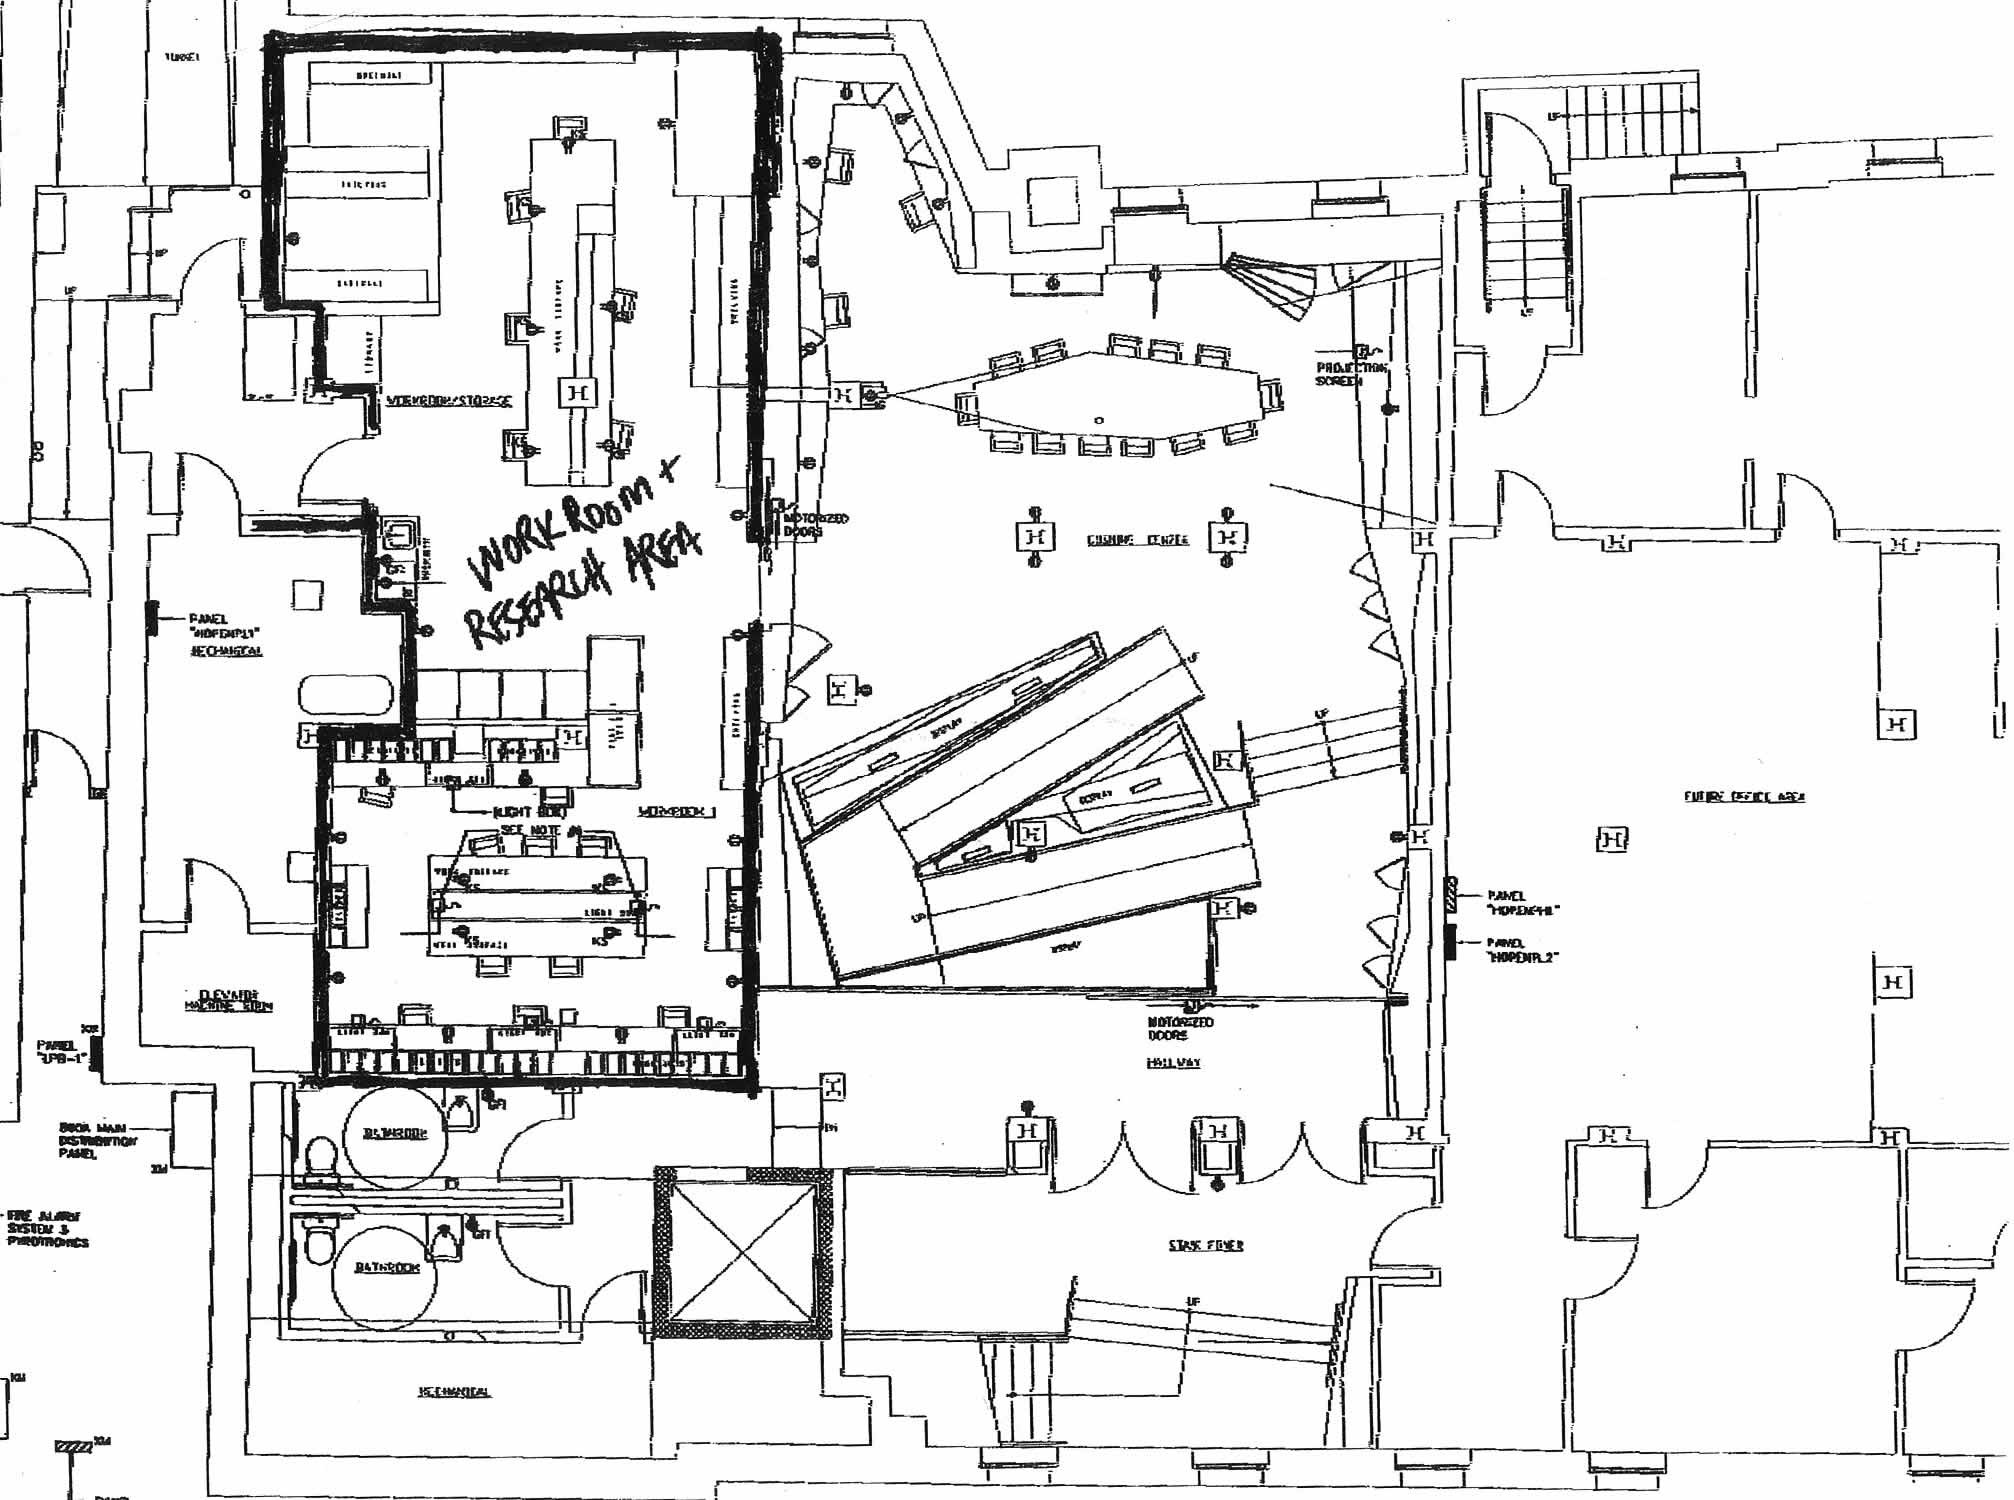 Dr. Harvey Cushing Center Architectural Plans.